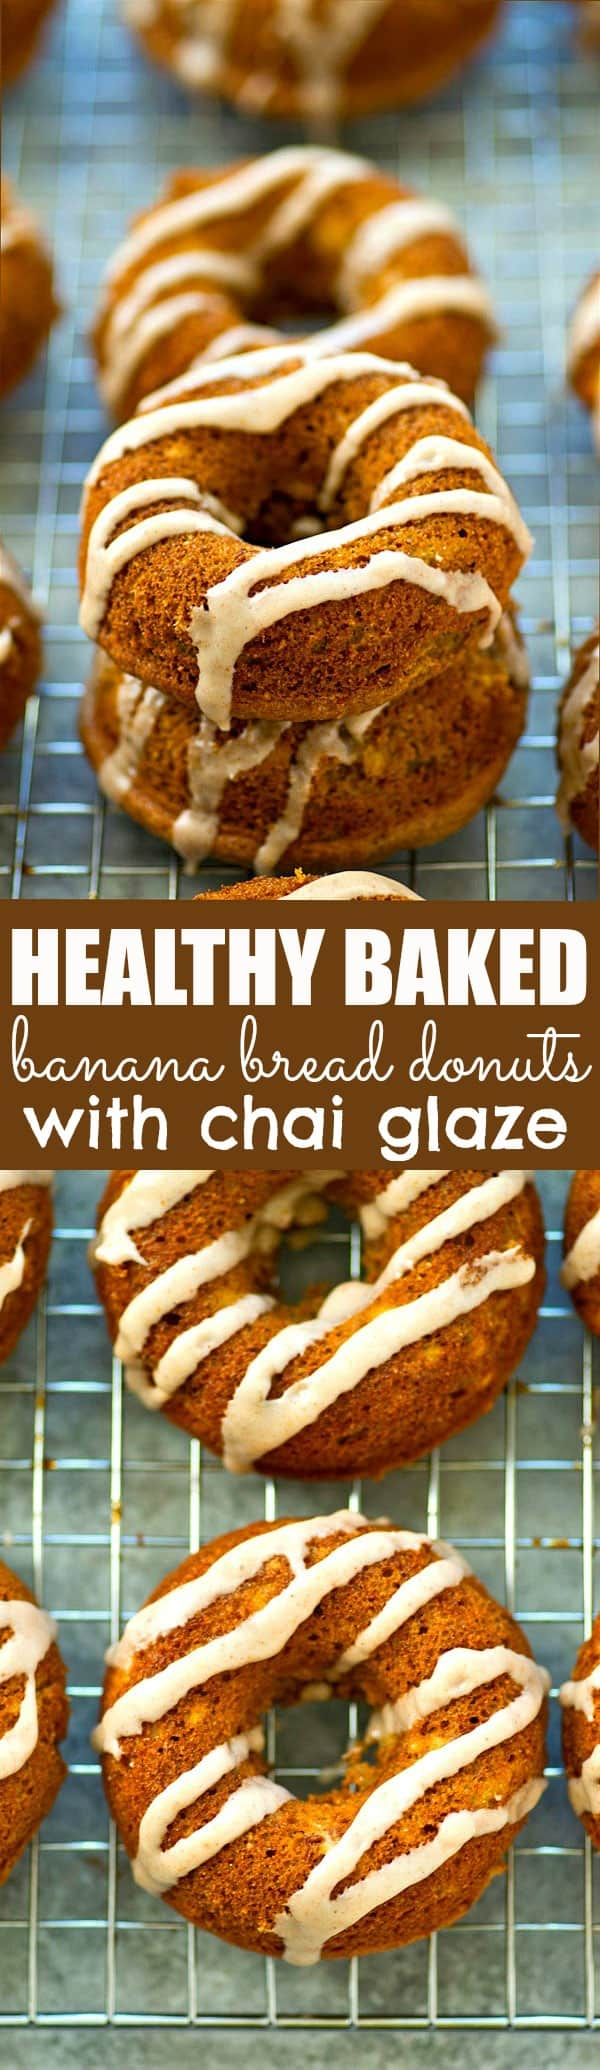 Banana bread in healthy donut form! These soft banana bread donuts taste just like a piece of banana bread and a spicy chai glaze drizzled on top makes them irresistible!